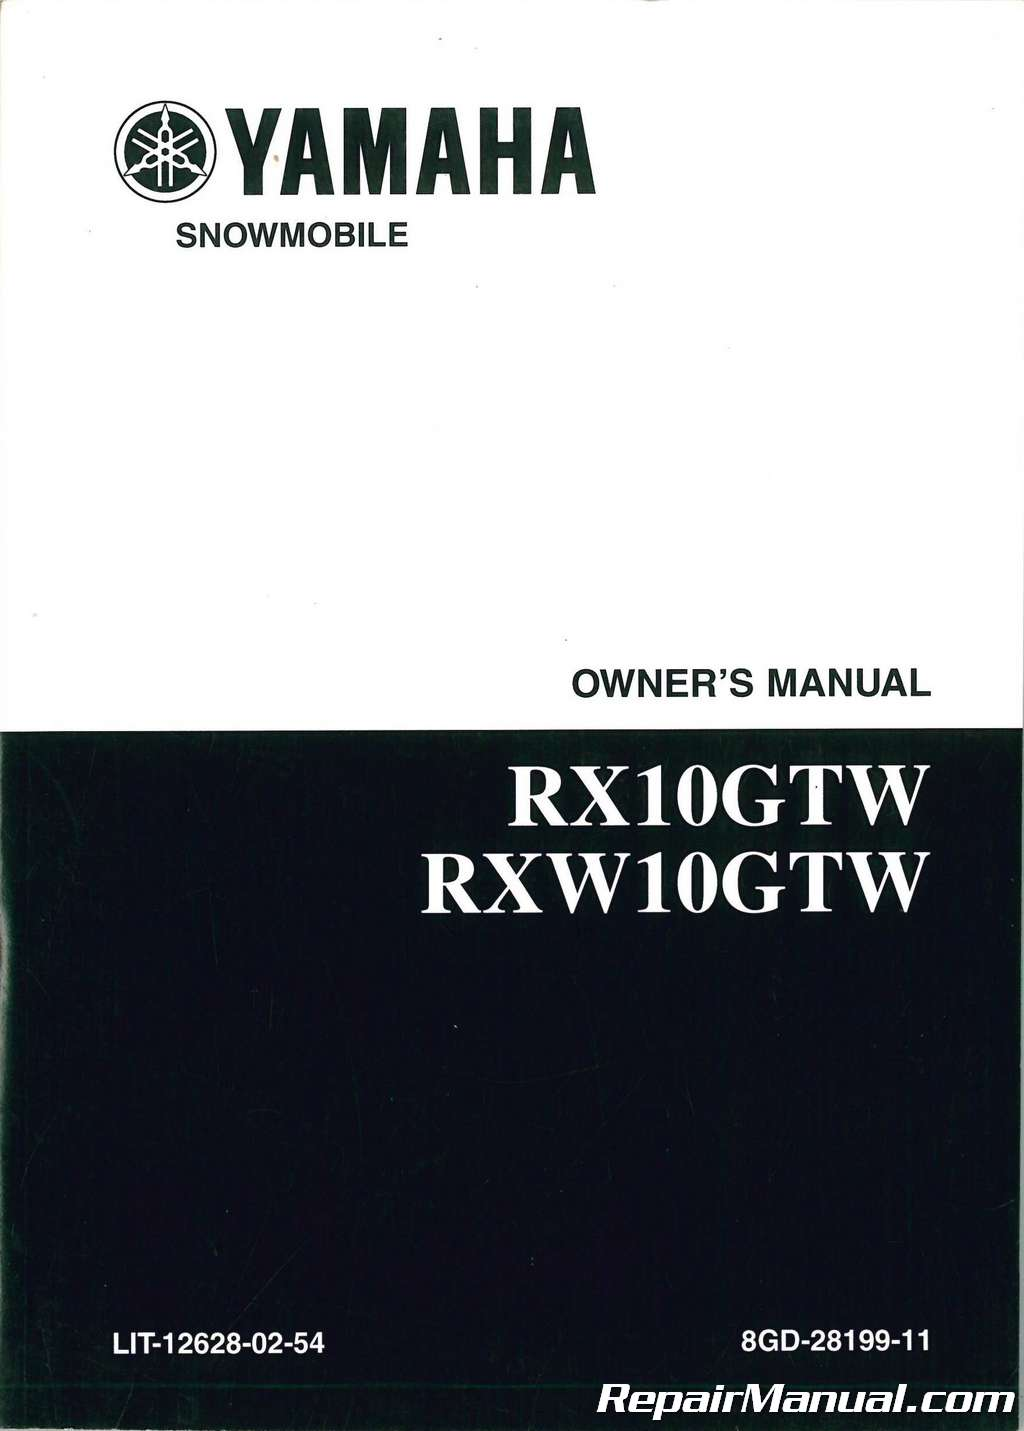 2007 Attak Yamaha Rx10gtw Rxw10gtw Snowmobile Owners Manual   Lit